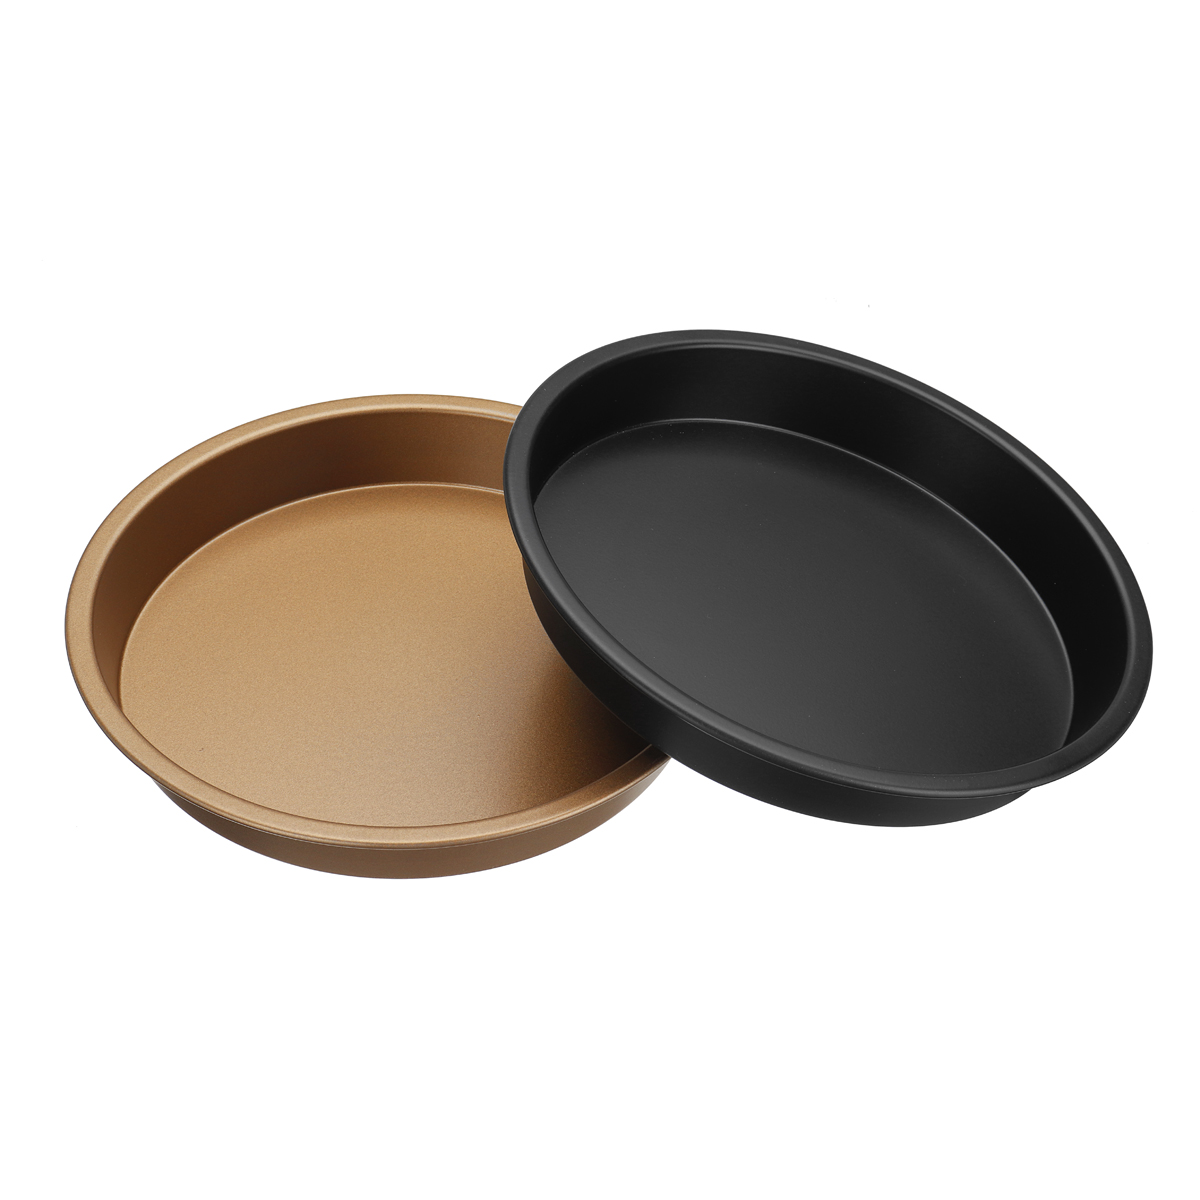 8 Inch Non-stick Pizza Pan Tray Plate Round Carbon Steel Fit for 4.2-6.8QT Air Fryer